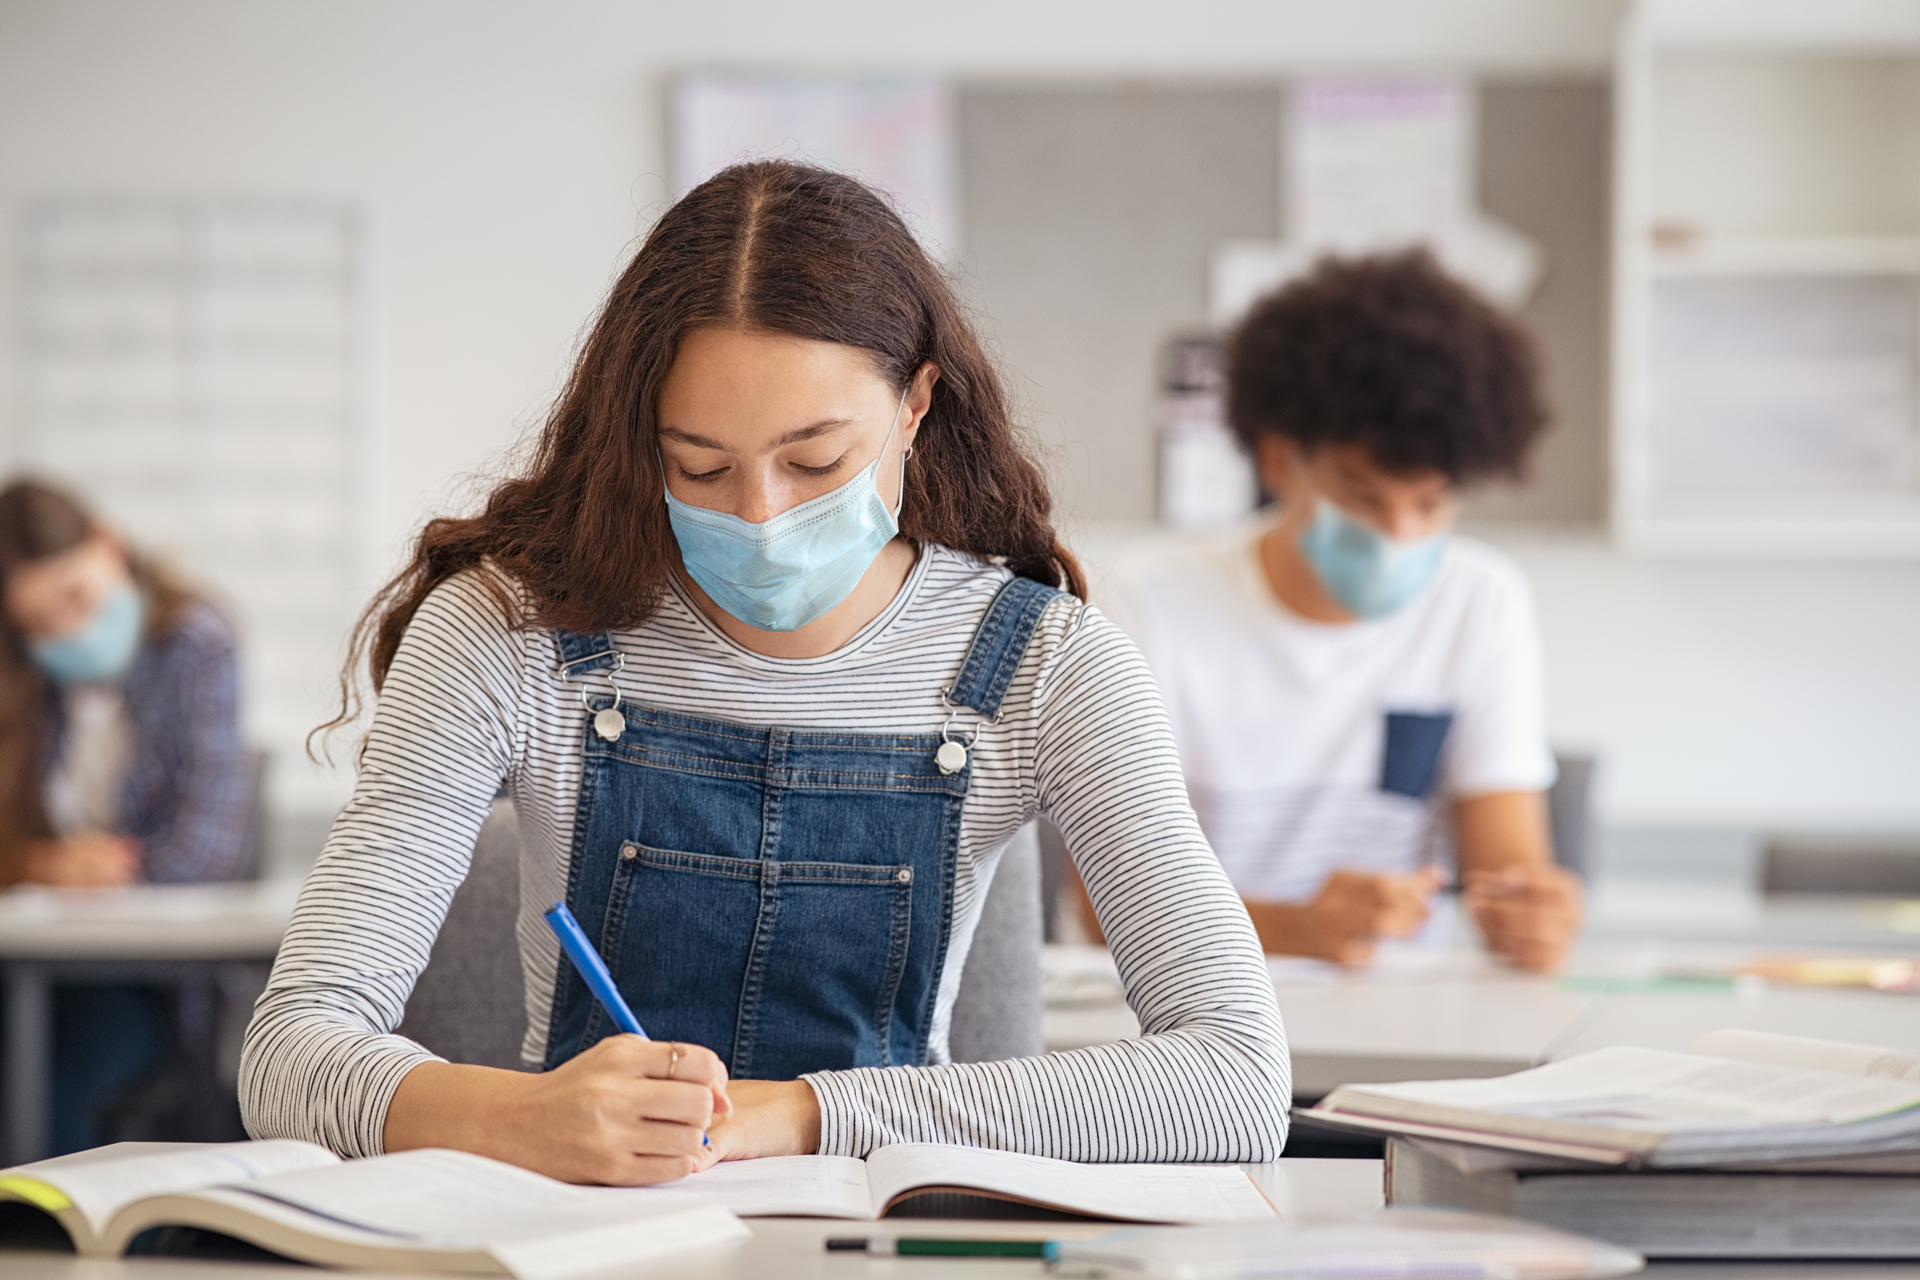 Students Wearing Masks in Class